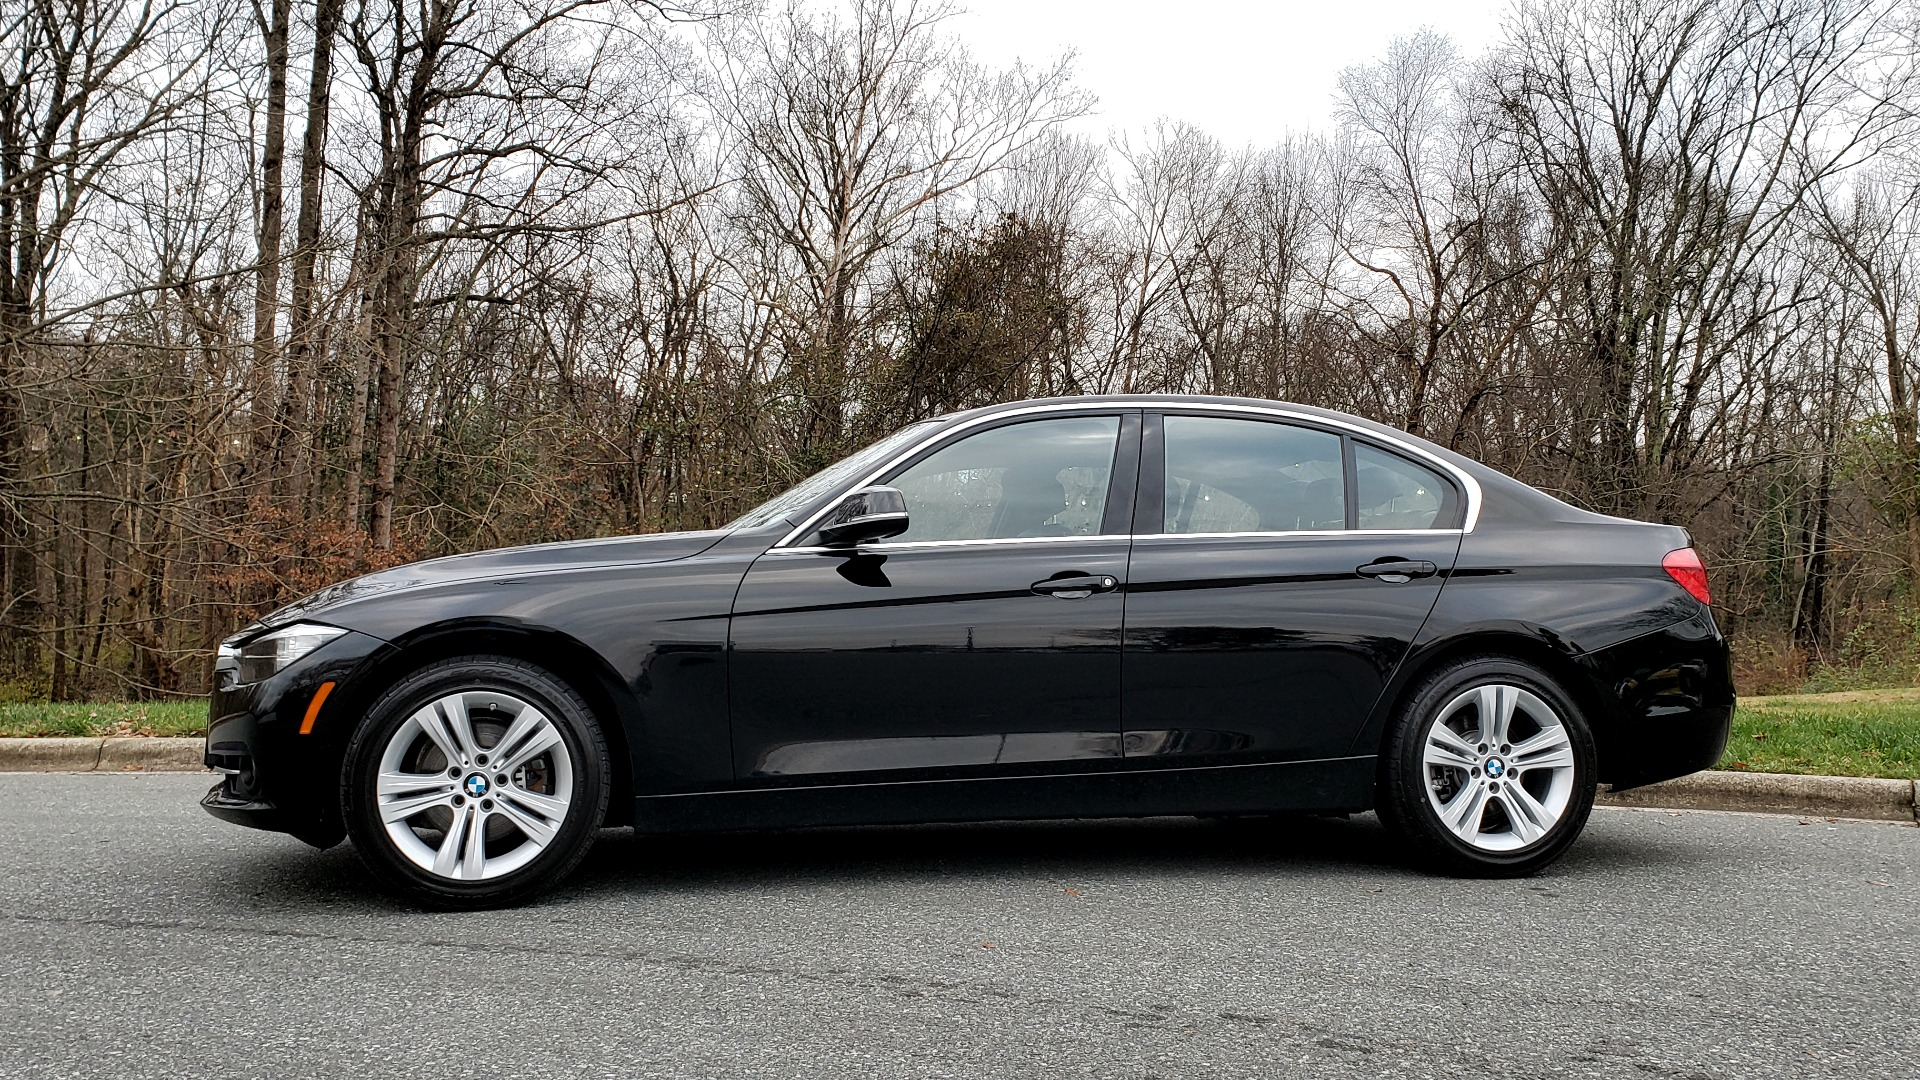 Used 2017 BMW 3 SERIES 330I XDRIVE / AWD / HEATED SEATS / LOW MILES for sale $23,495 at Formula Imports in Charlotte NC 28227 2